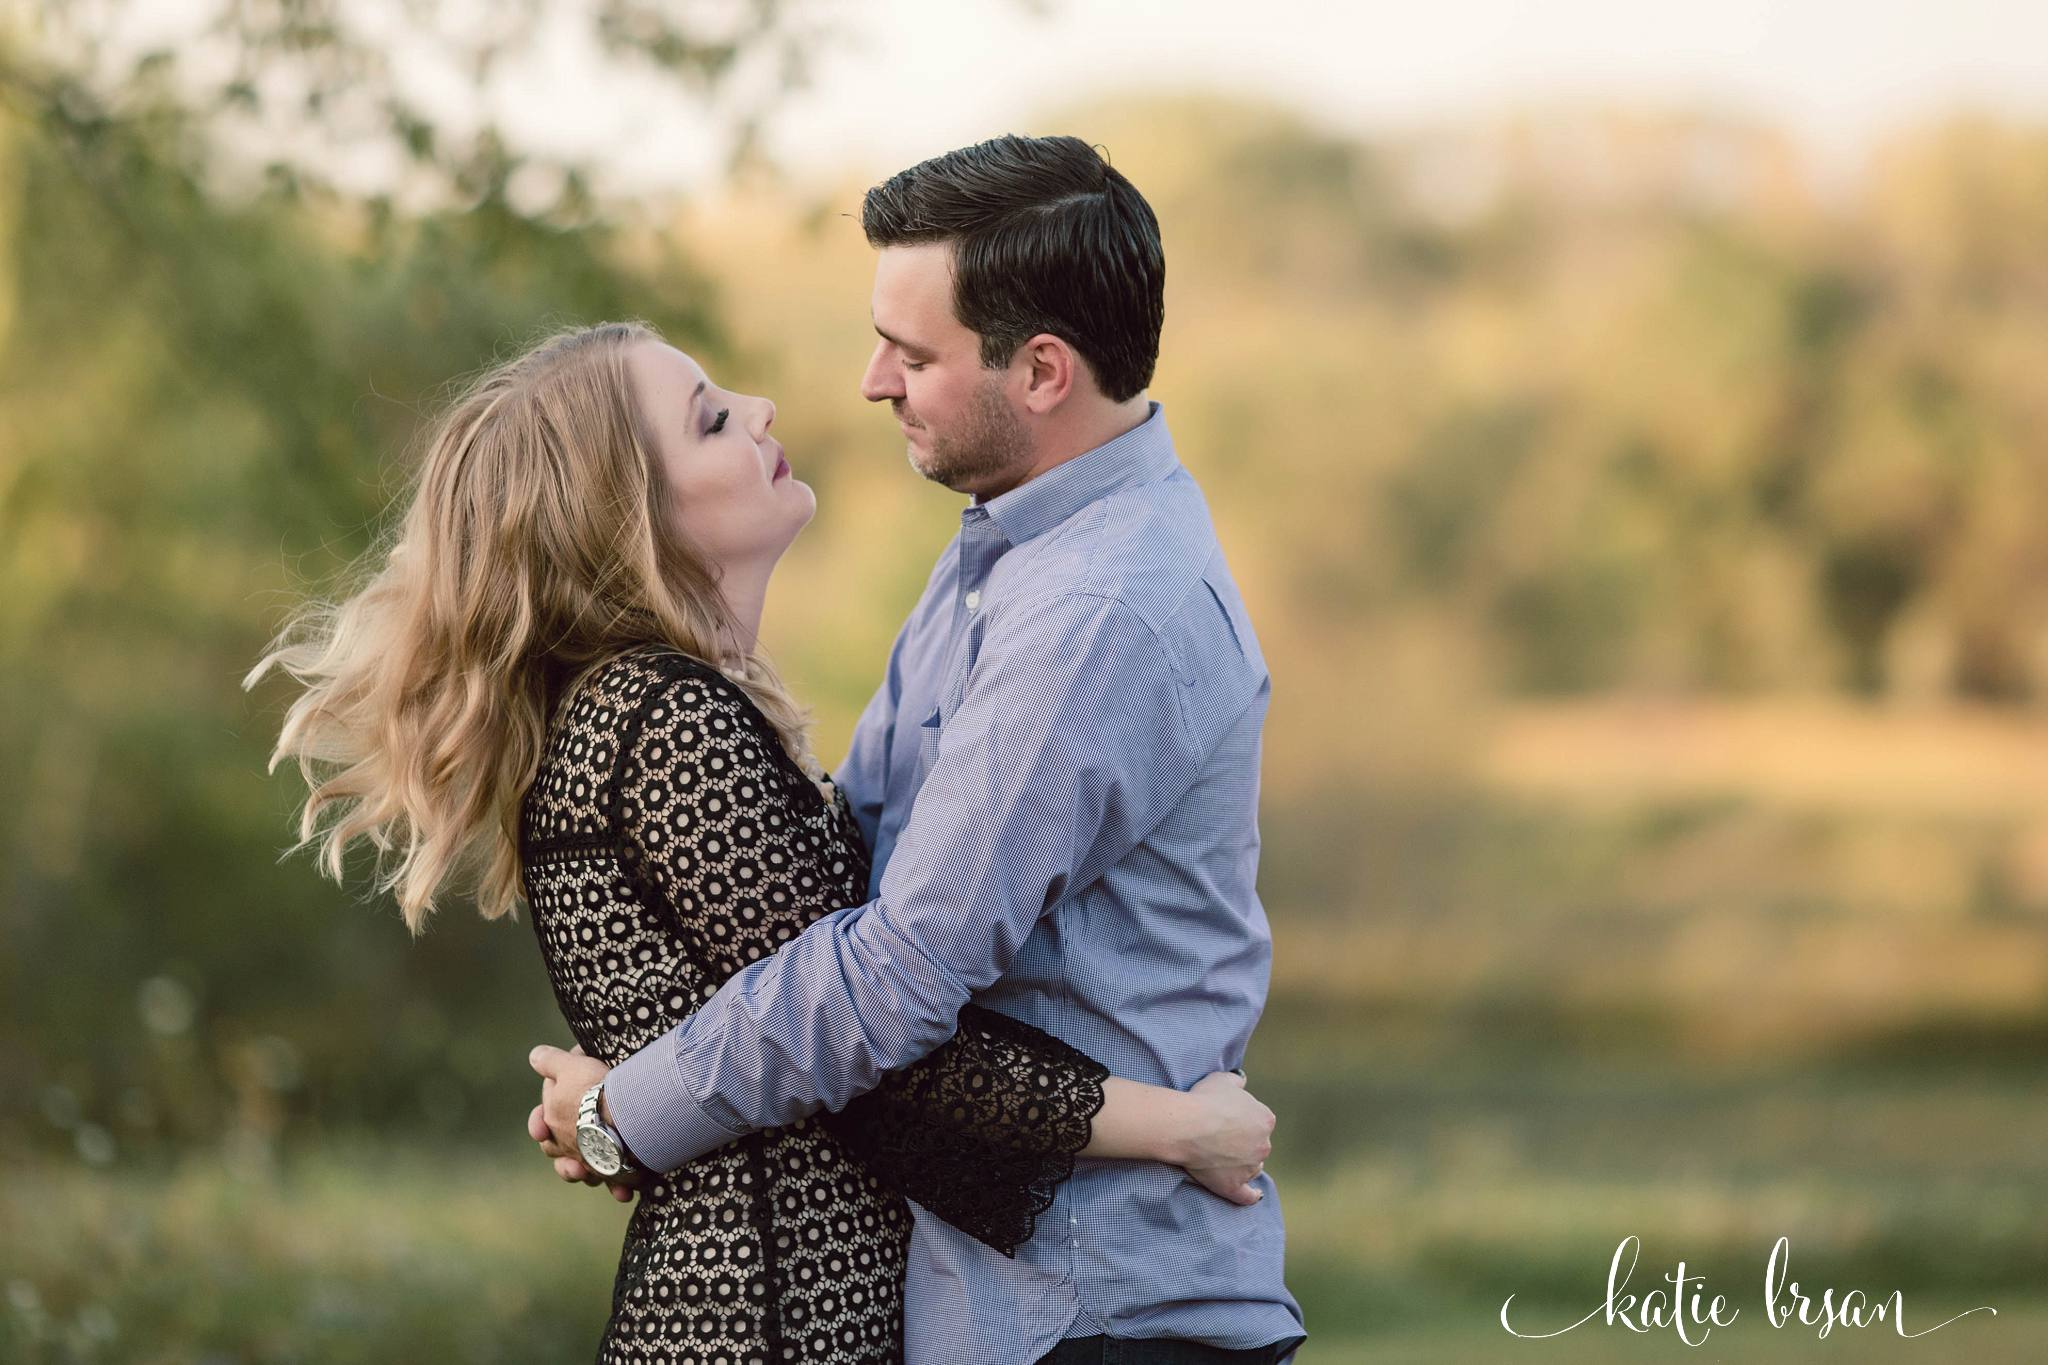 Mokena_EngagementSession_RuffledFeathers_Wedding_0950.jpg